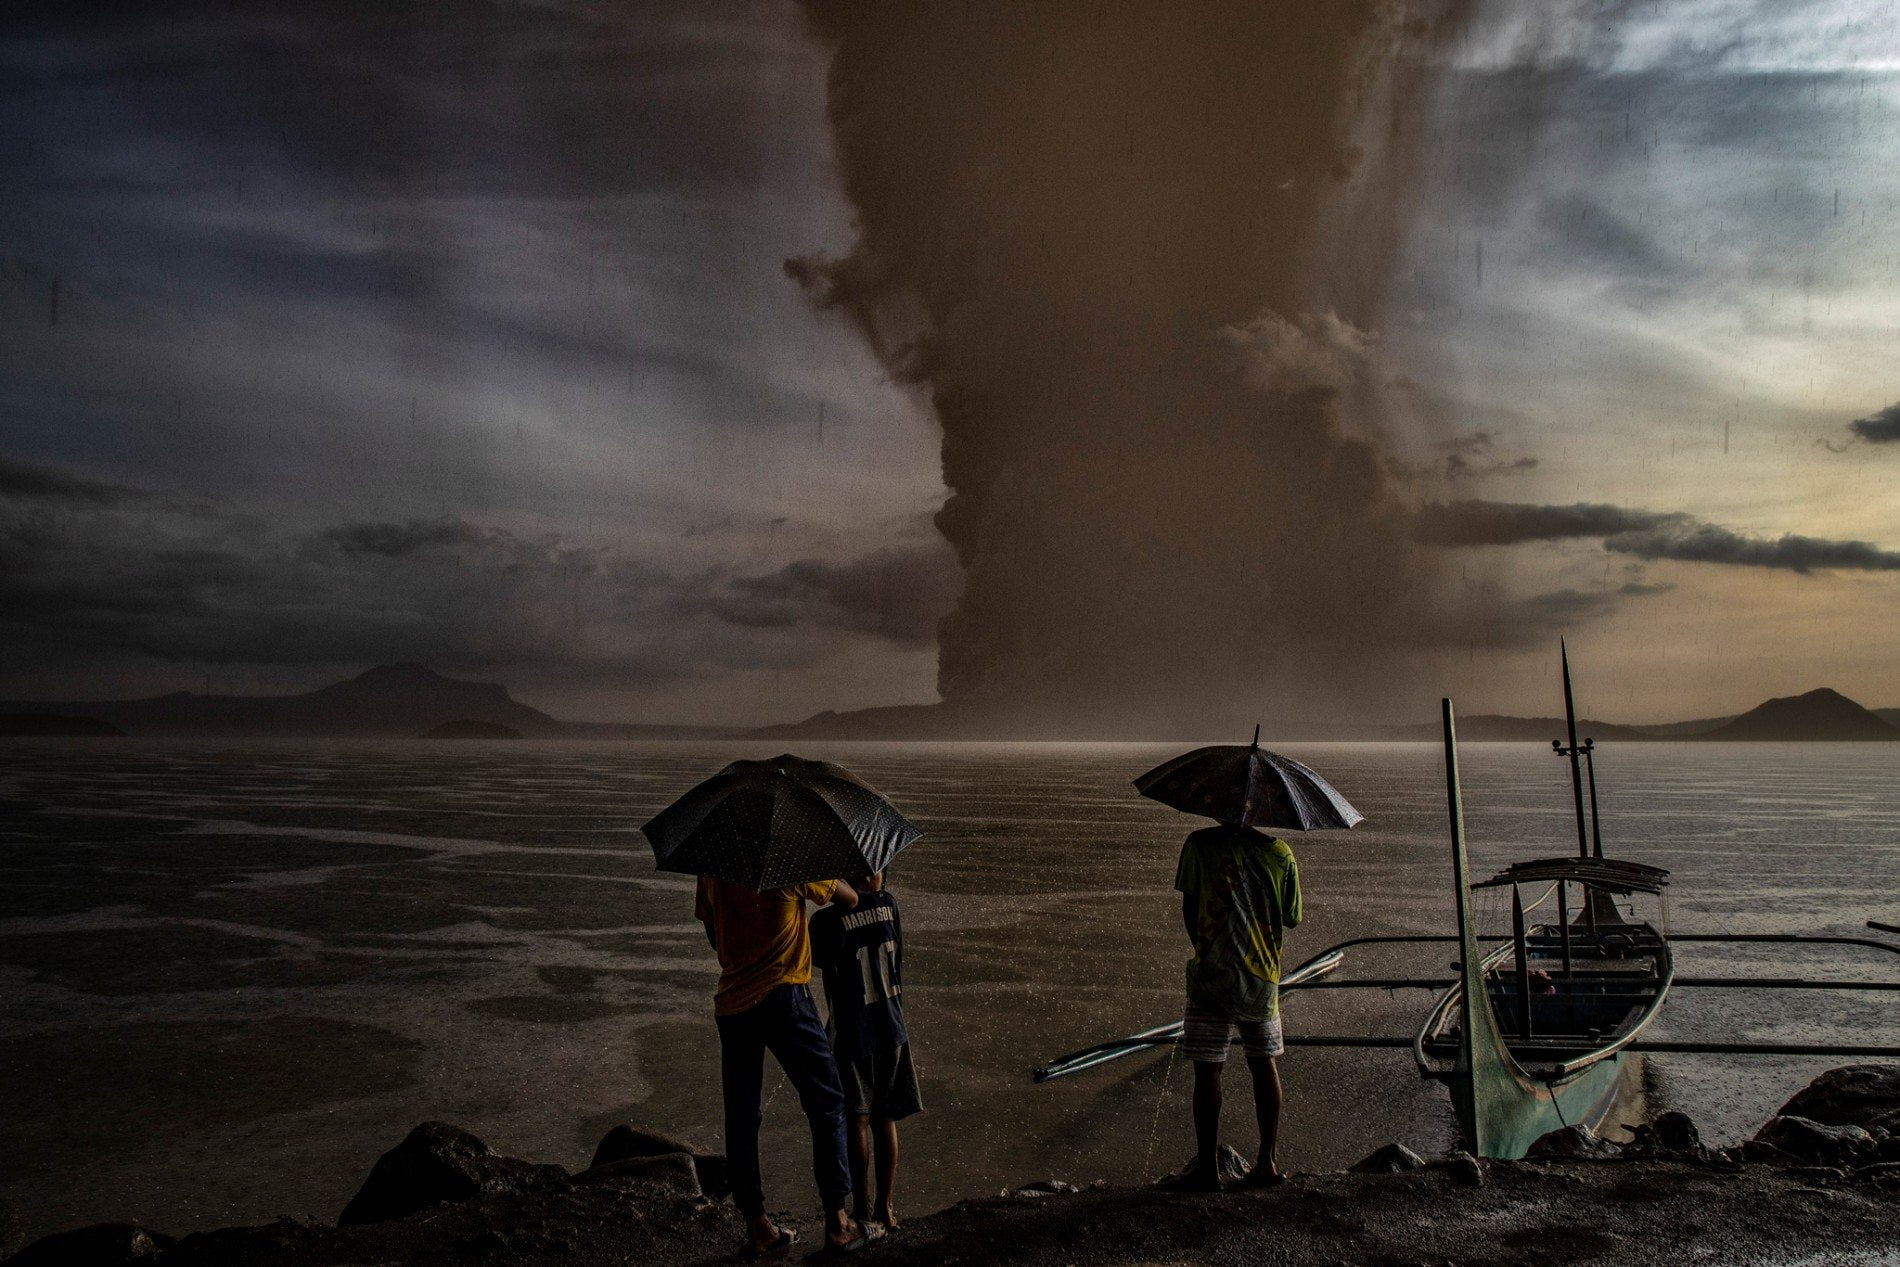 The Taal volcano registers a strong activity in the Philippines